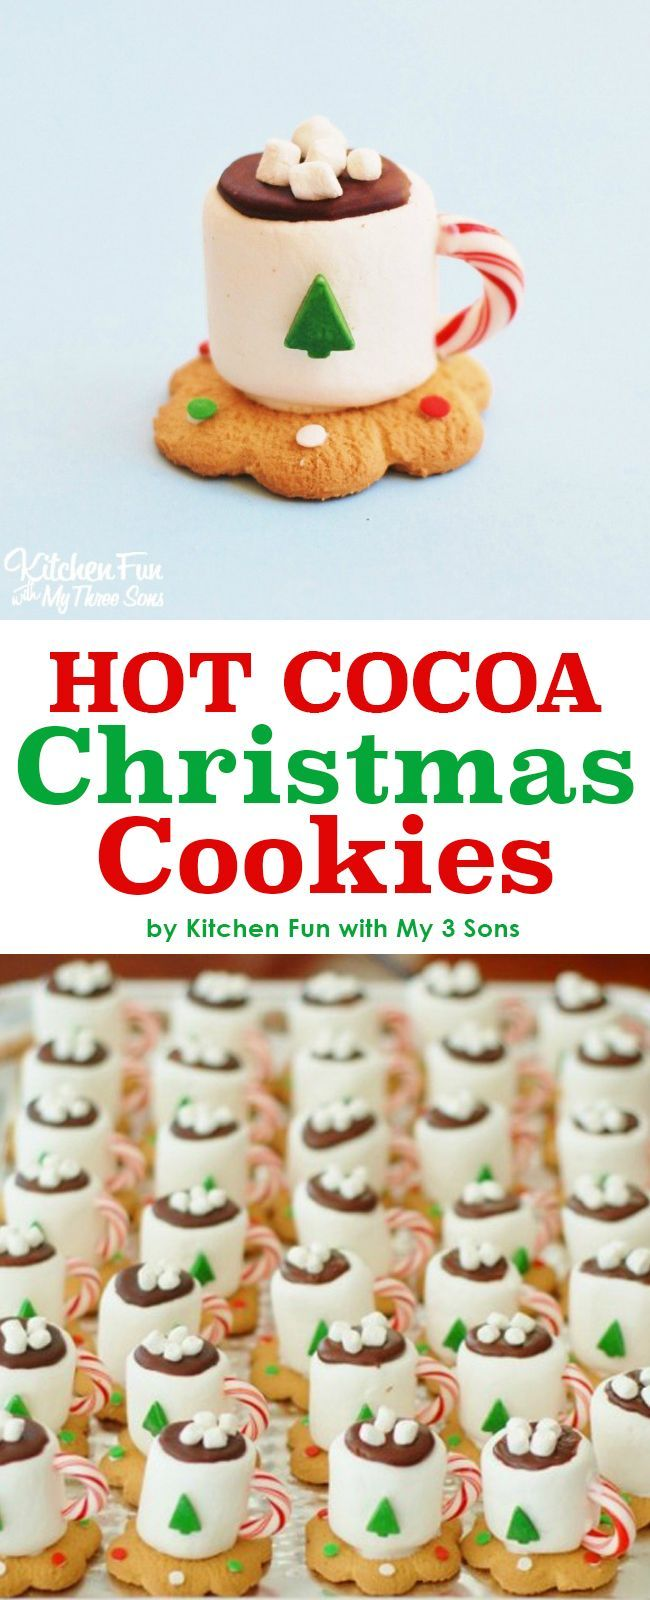 Adorable Hot Cocoa Christmas Cookies Made With Marshmallows Looks